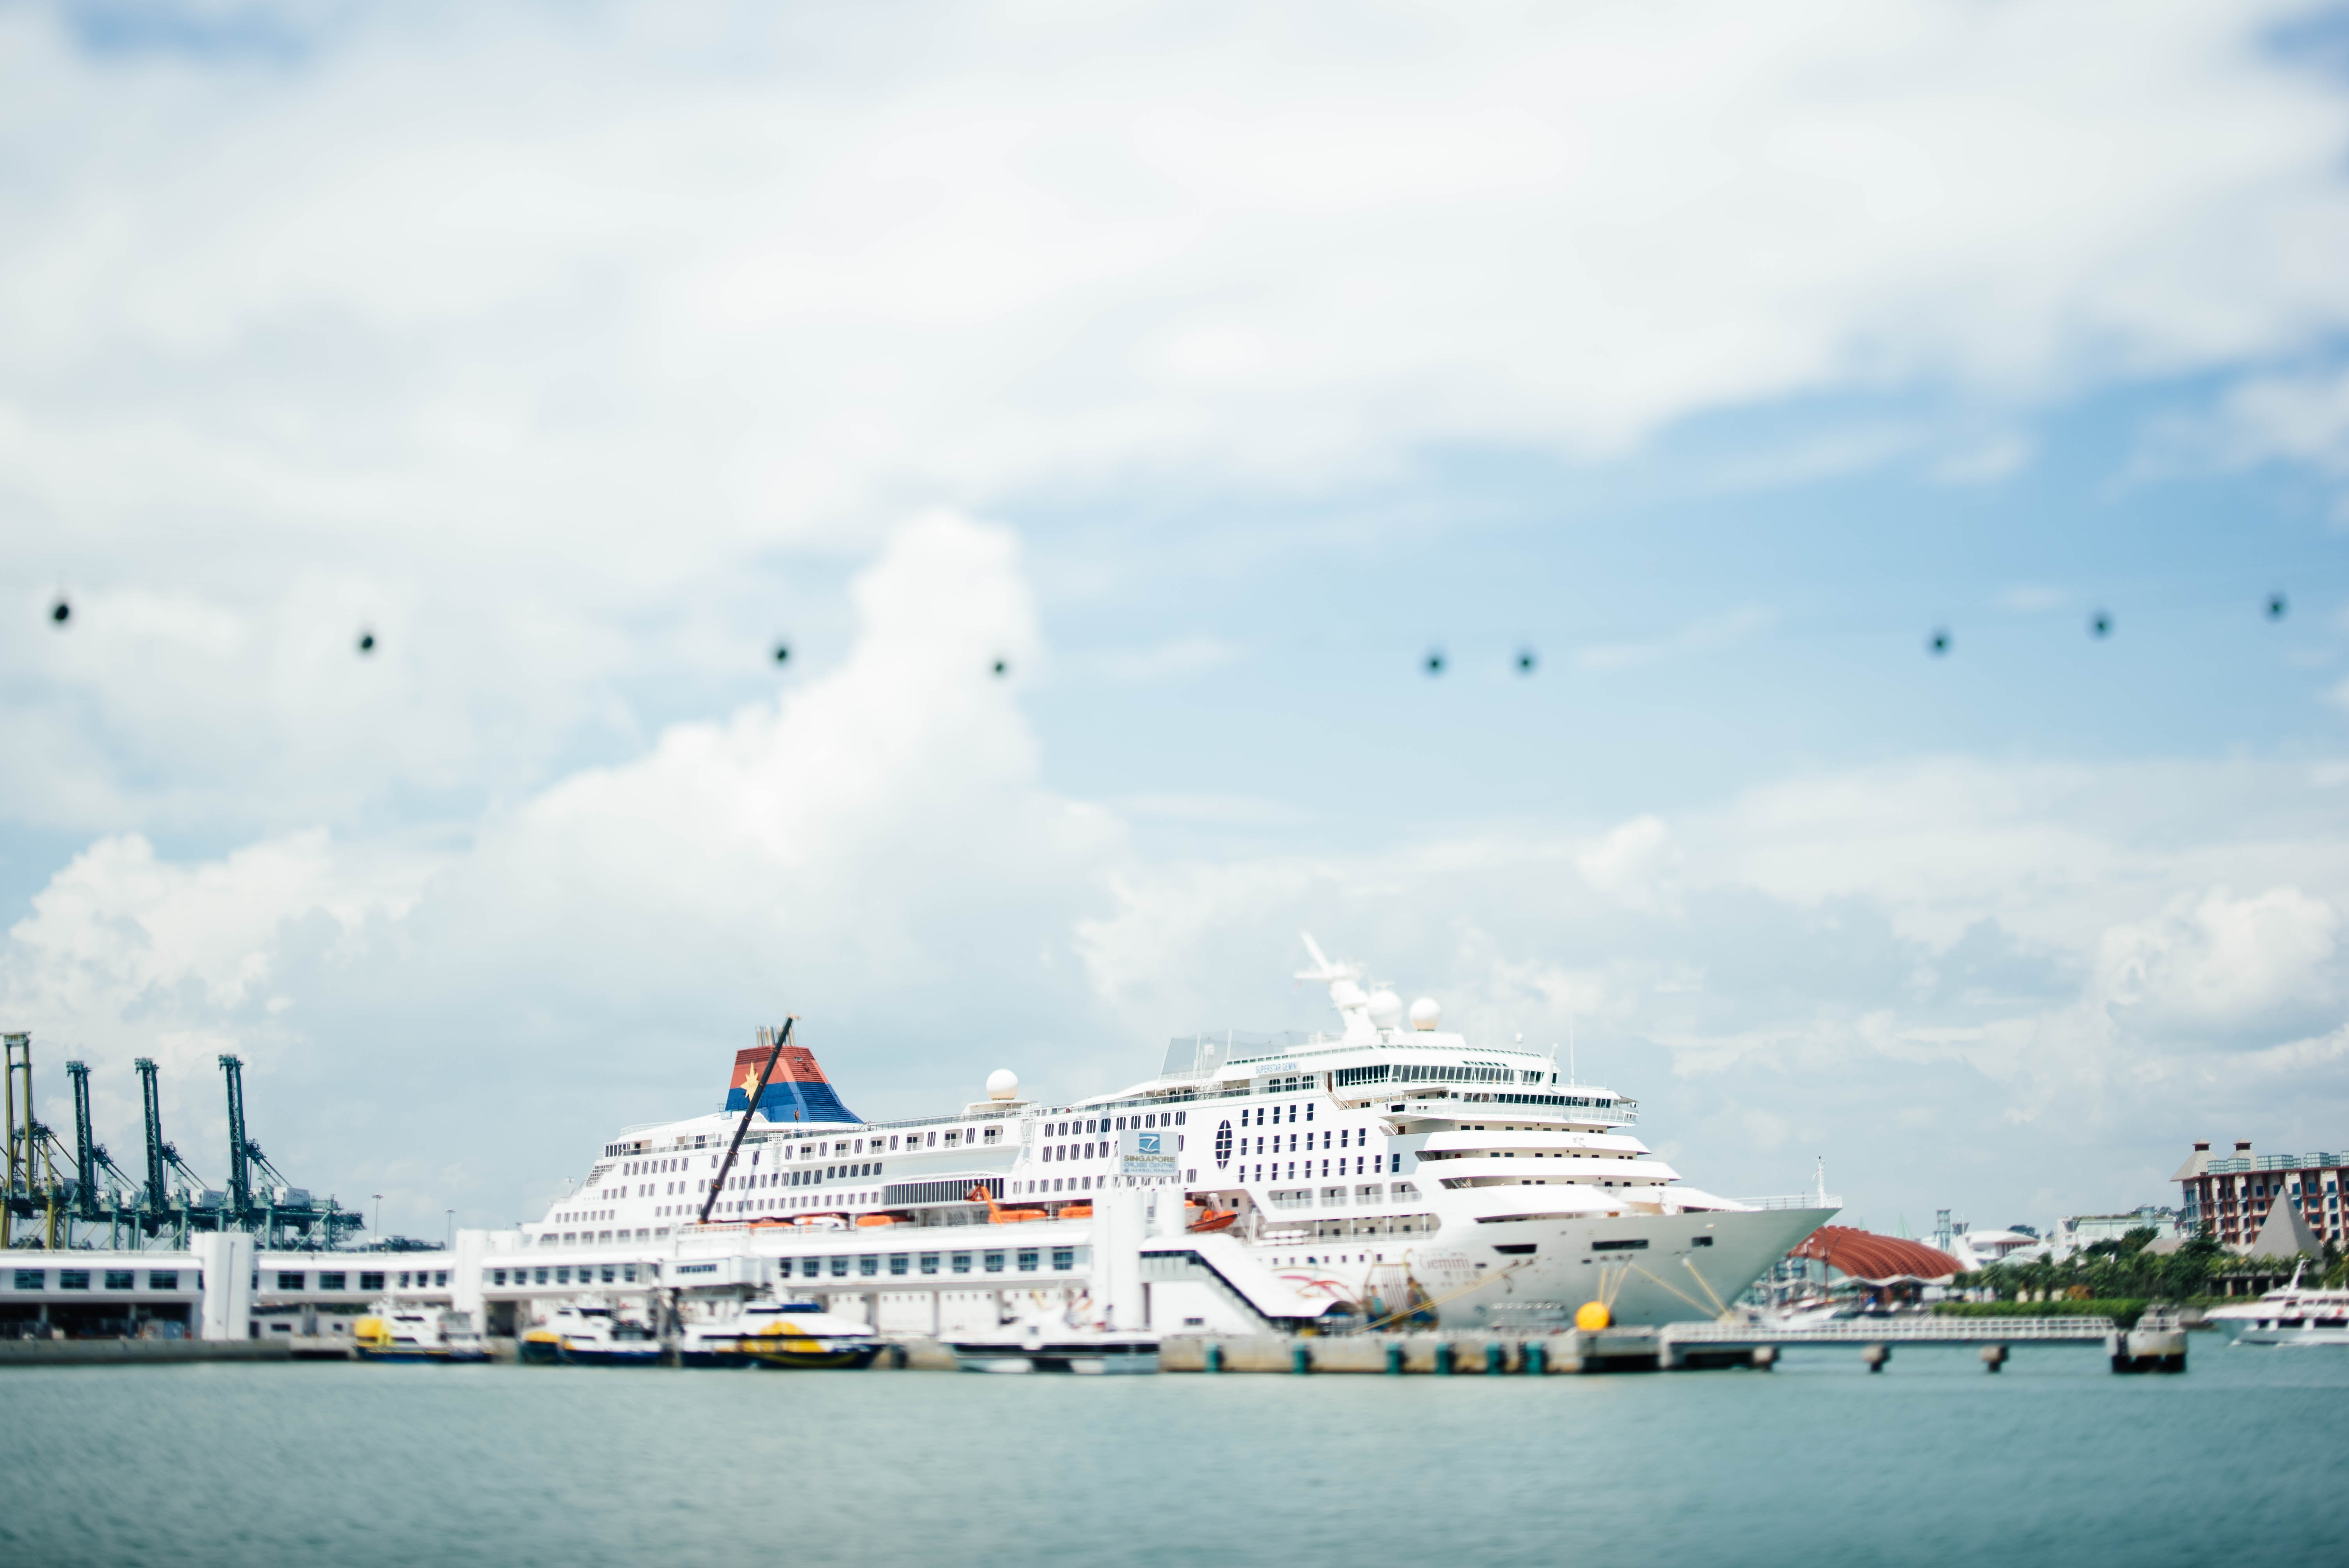 white cruise ship docking on blue bod of water under blue sky